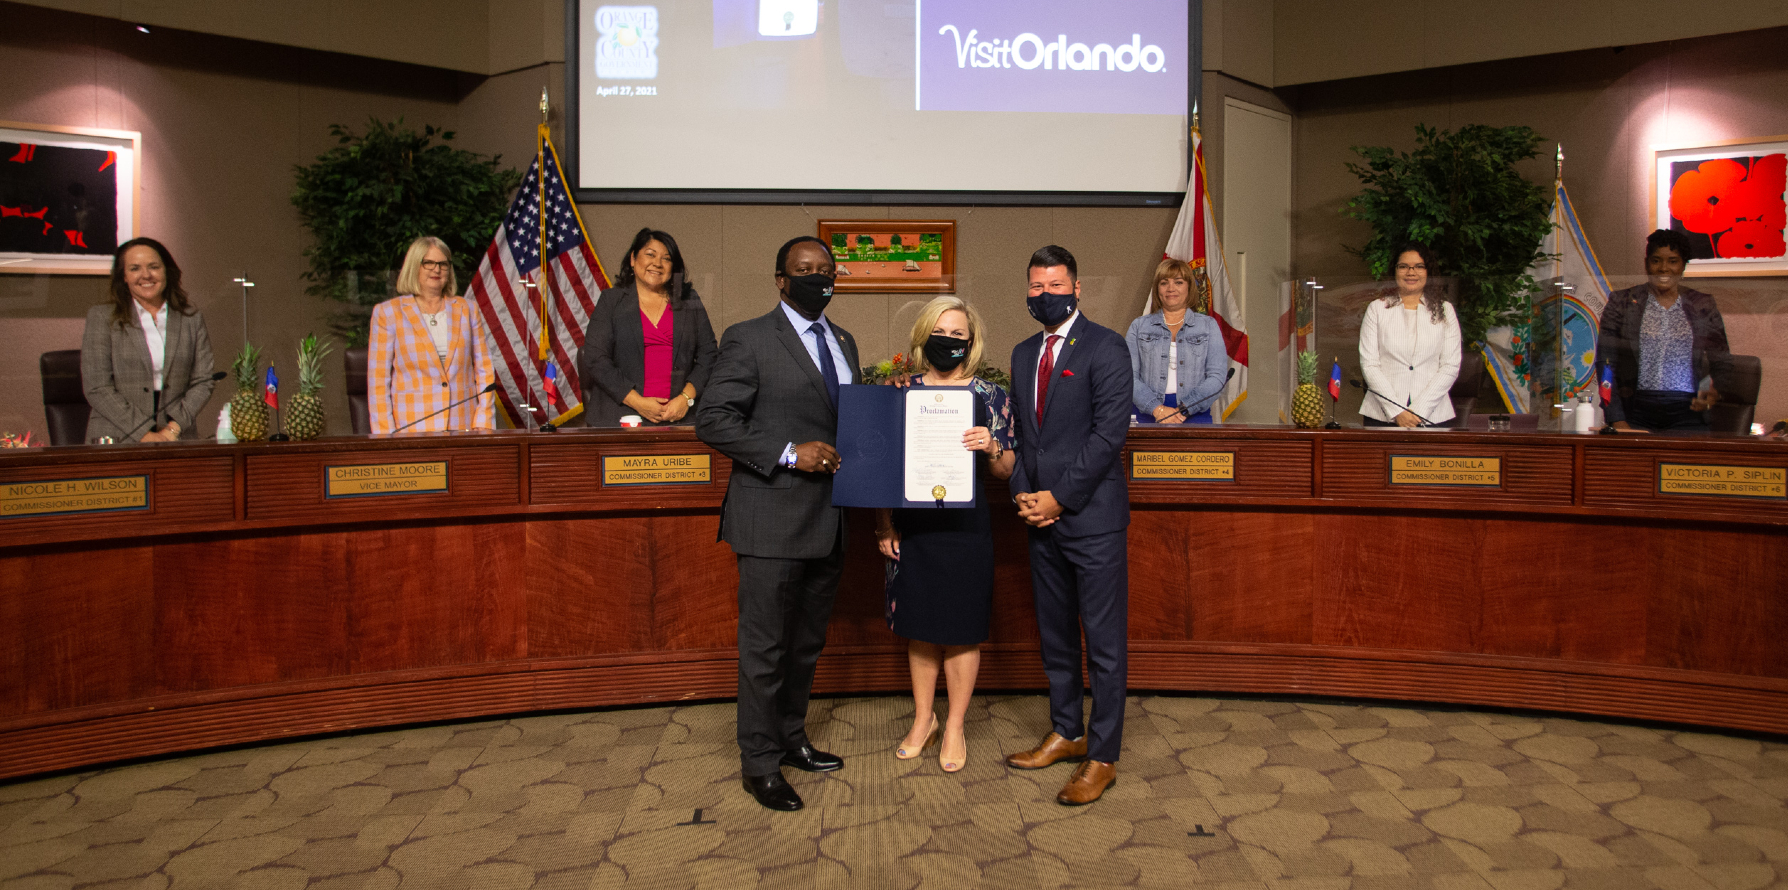 Foreground, from left to right: Mayor Jerry Demings; Casandra Matej, President and CEO of Visit Orlando; Robert Agrusa of the Central Florida Hotel & Lodging Association